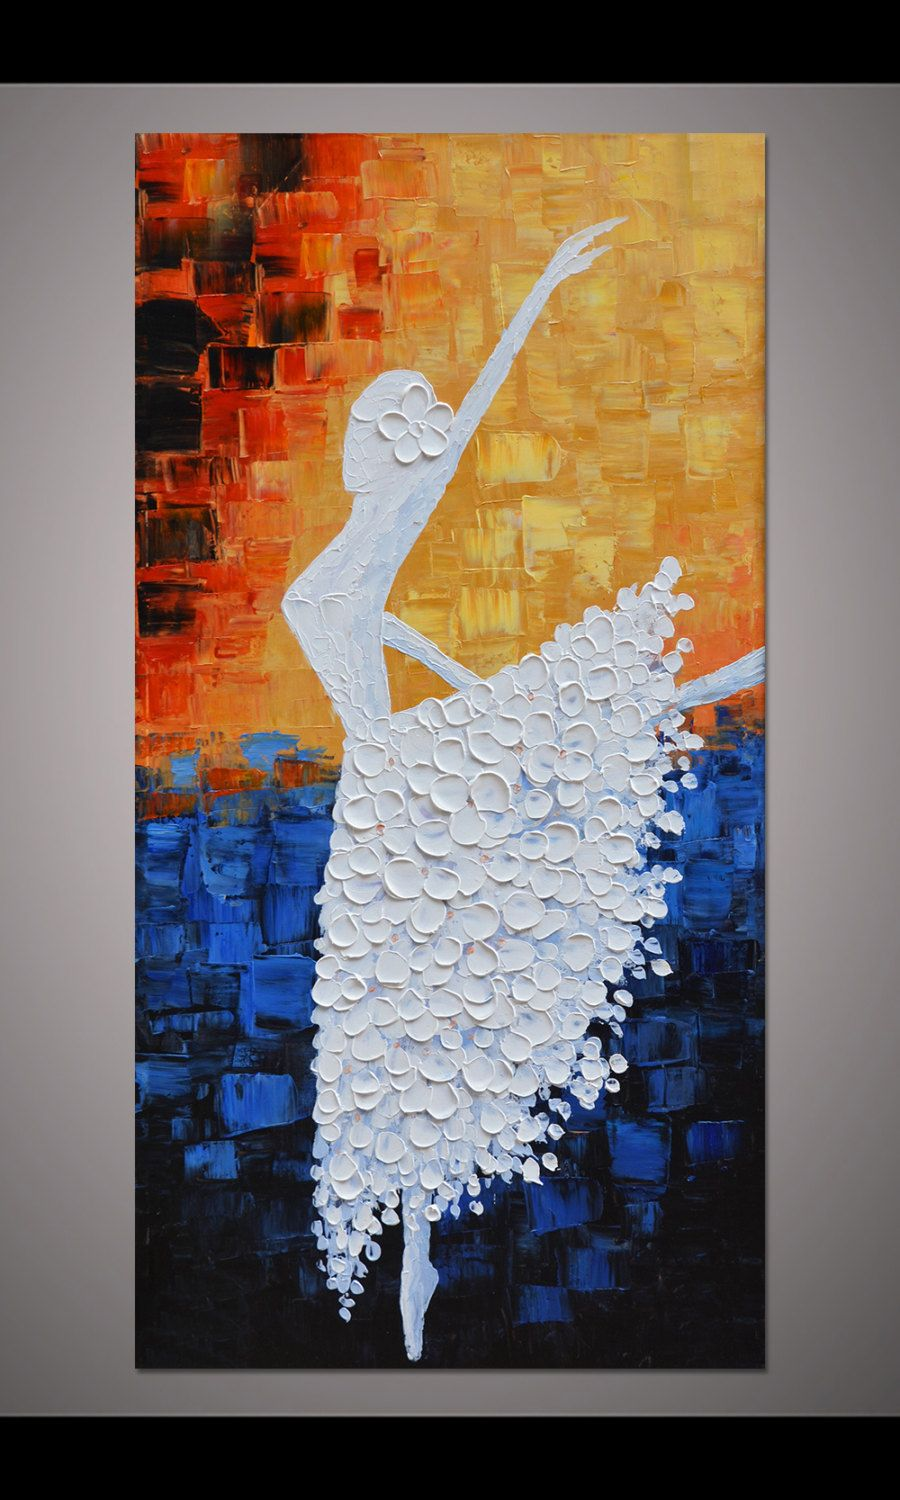 Hand painted dancing ballerina painting wall art picture living room bedroom home wall decor - Paredes pintadas a cuadros ...